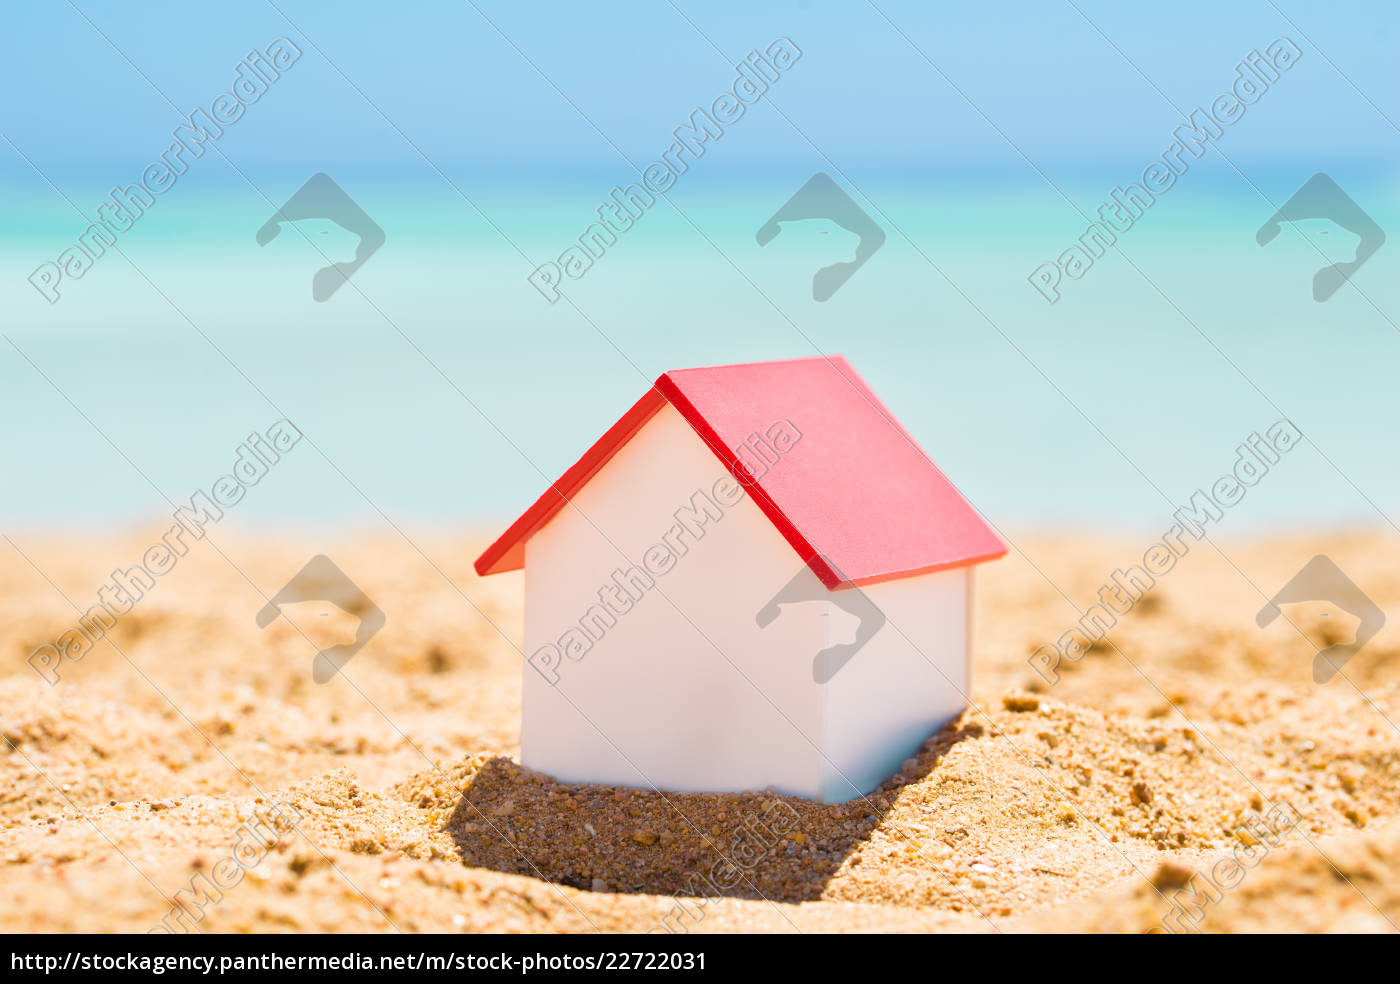 house, model, on, beach - 22722031